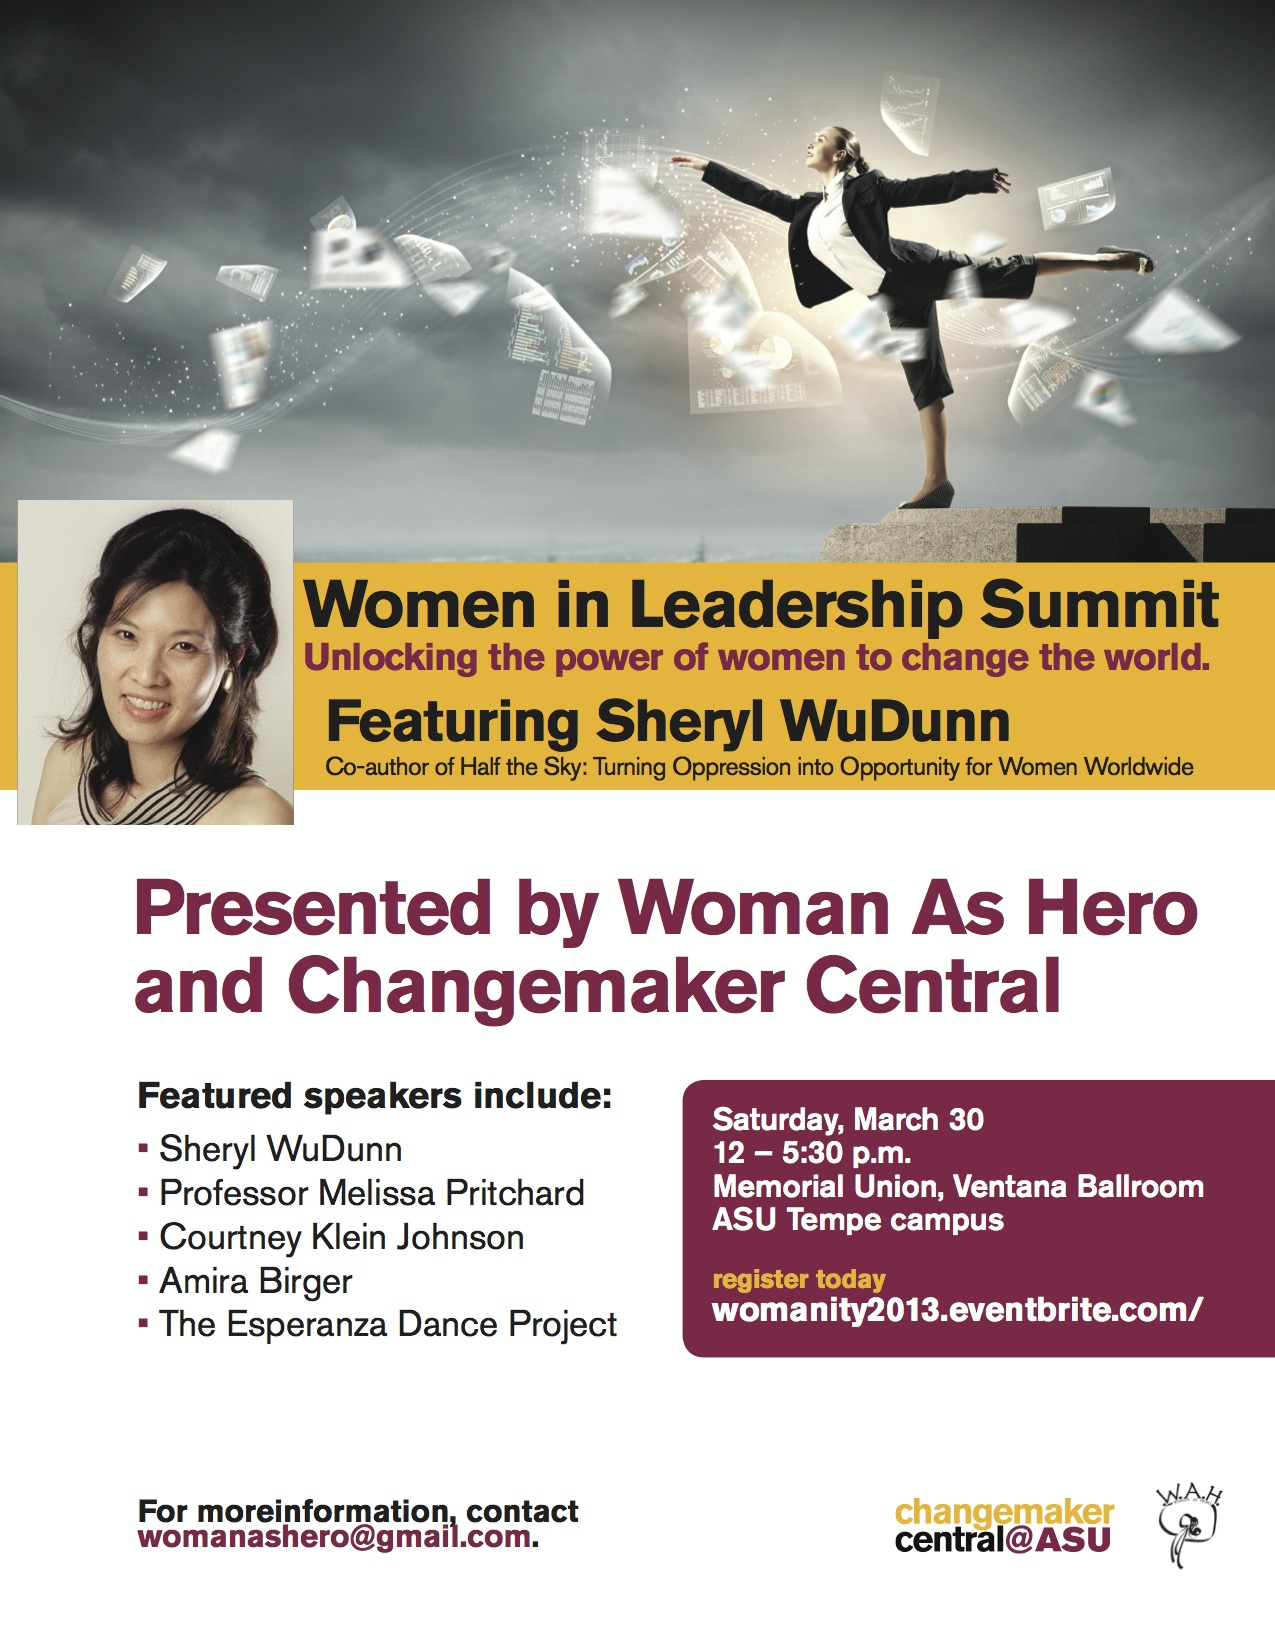 Official Flyer: Women in Leadership, Womanity 2013